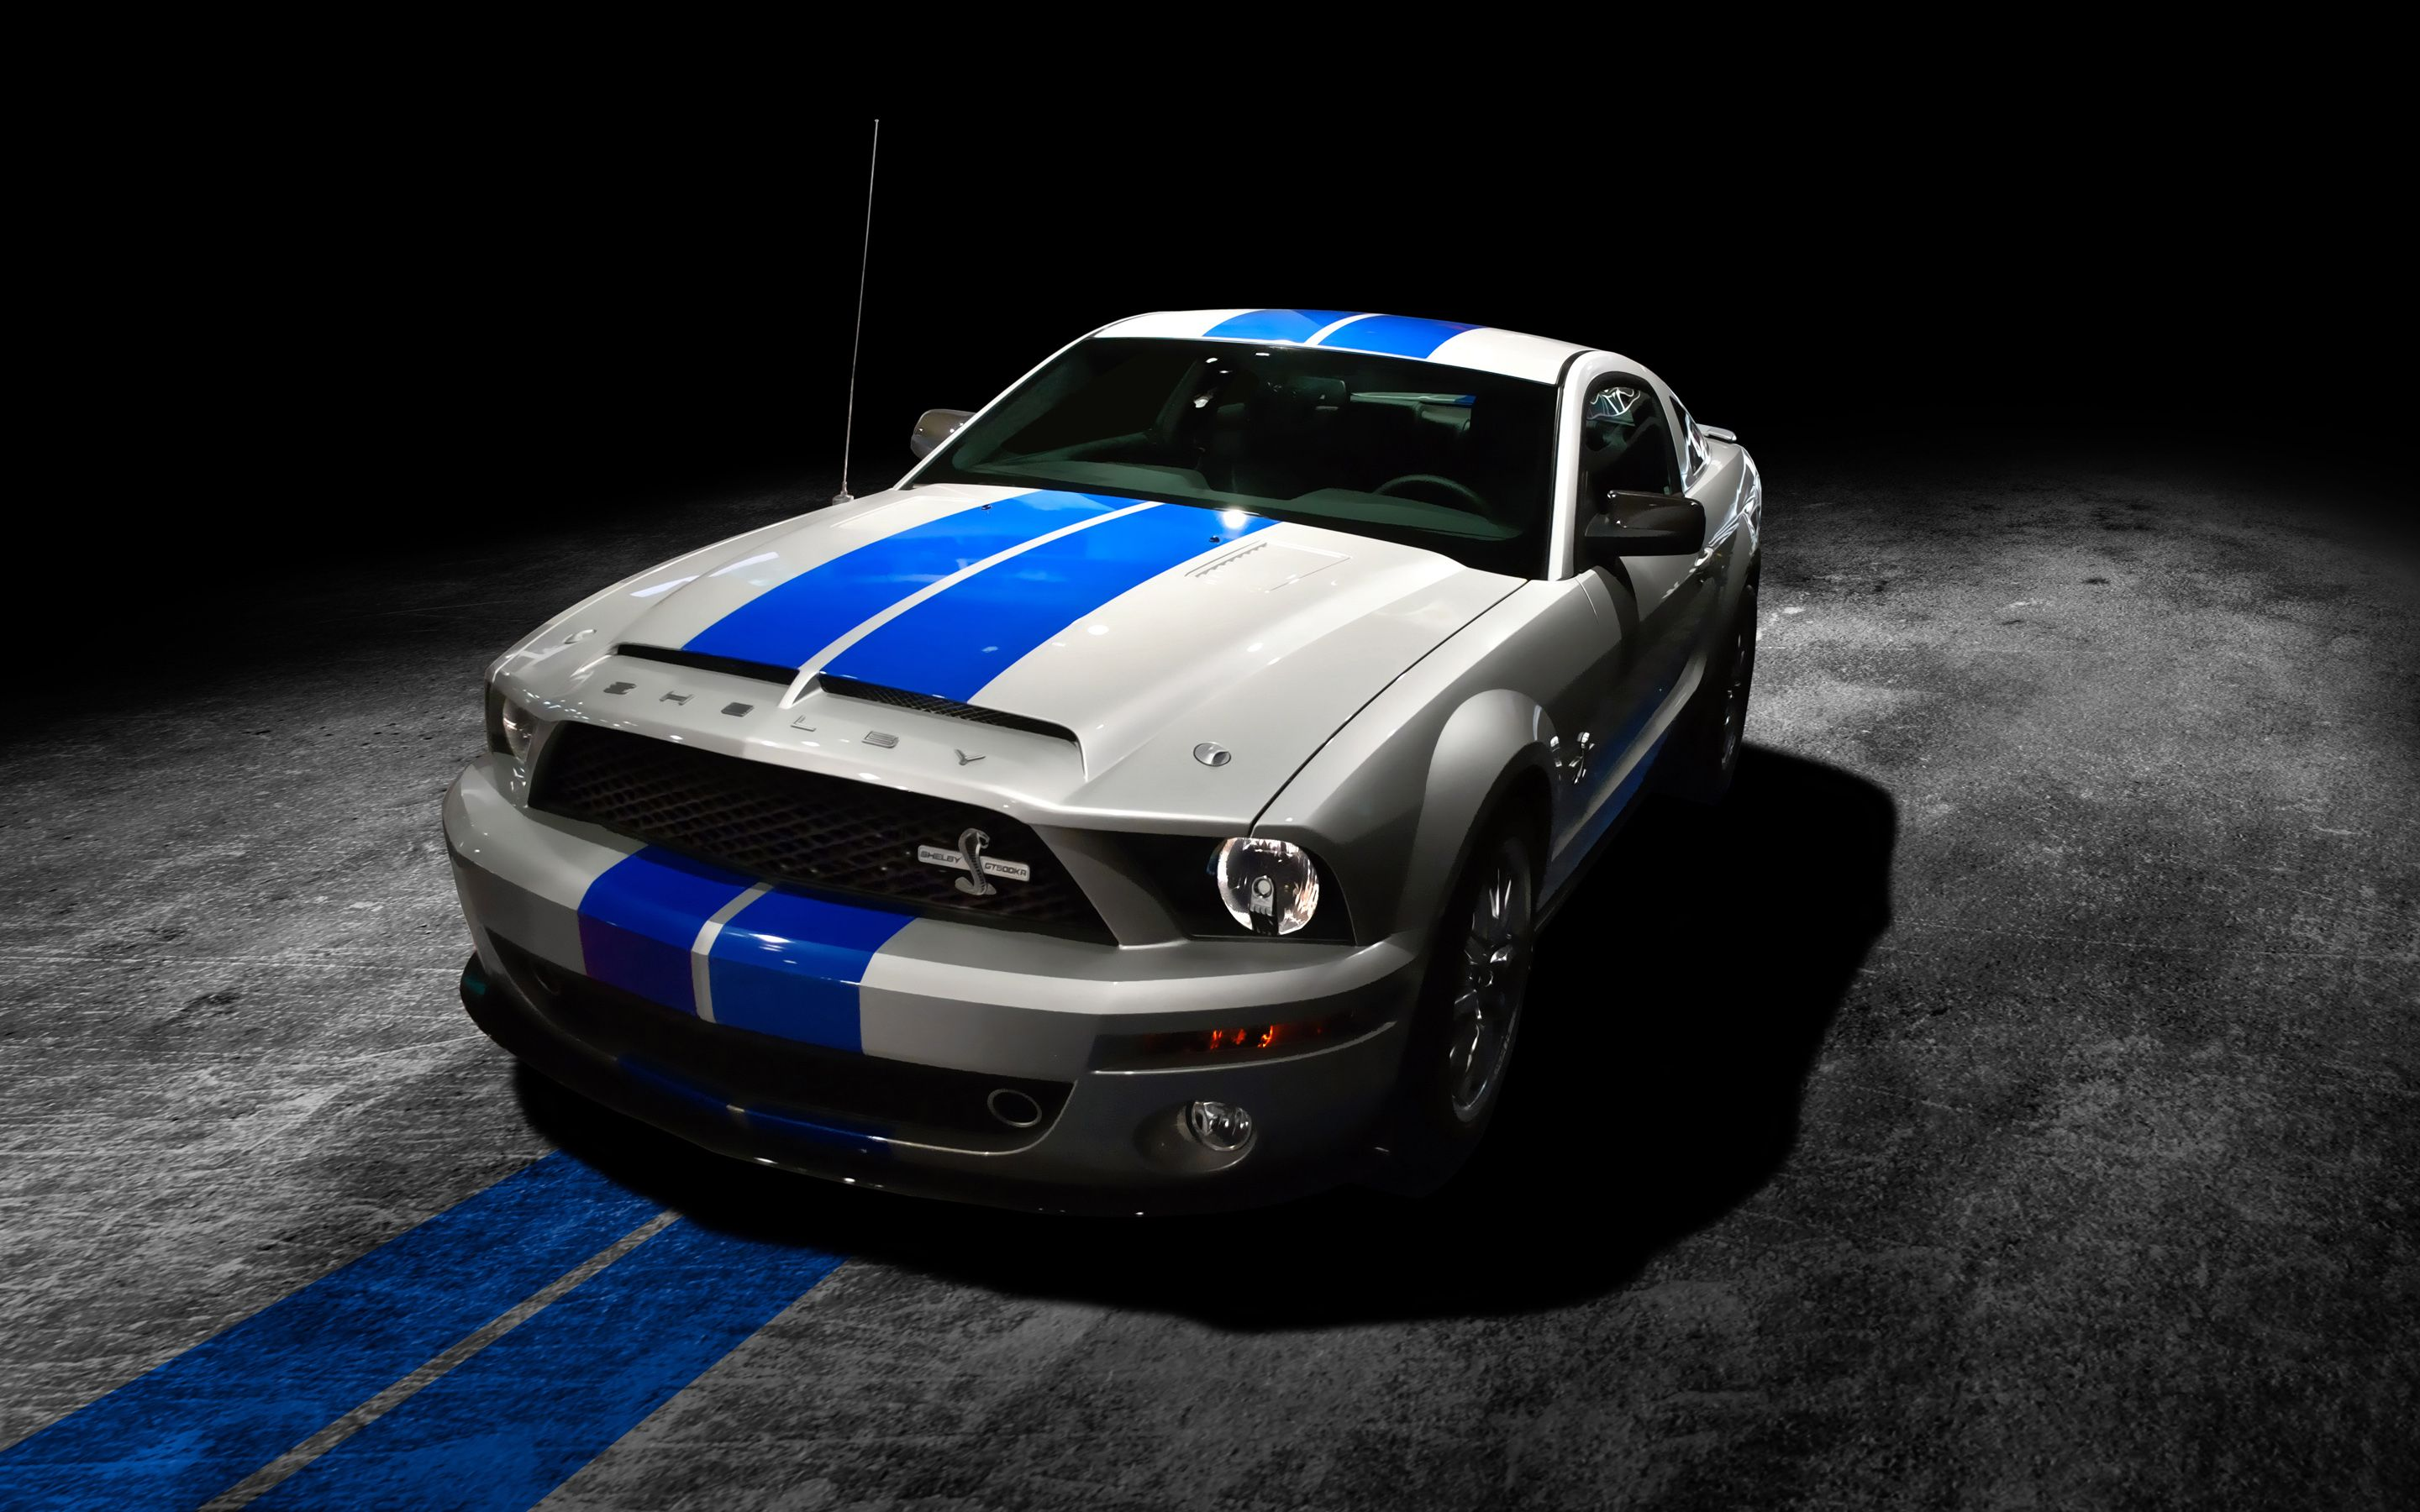 Hd Wallpapers Widescreen 1080p 3d Ford Mustang Shelby Gt500 2013